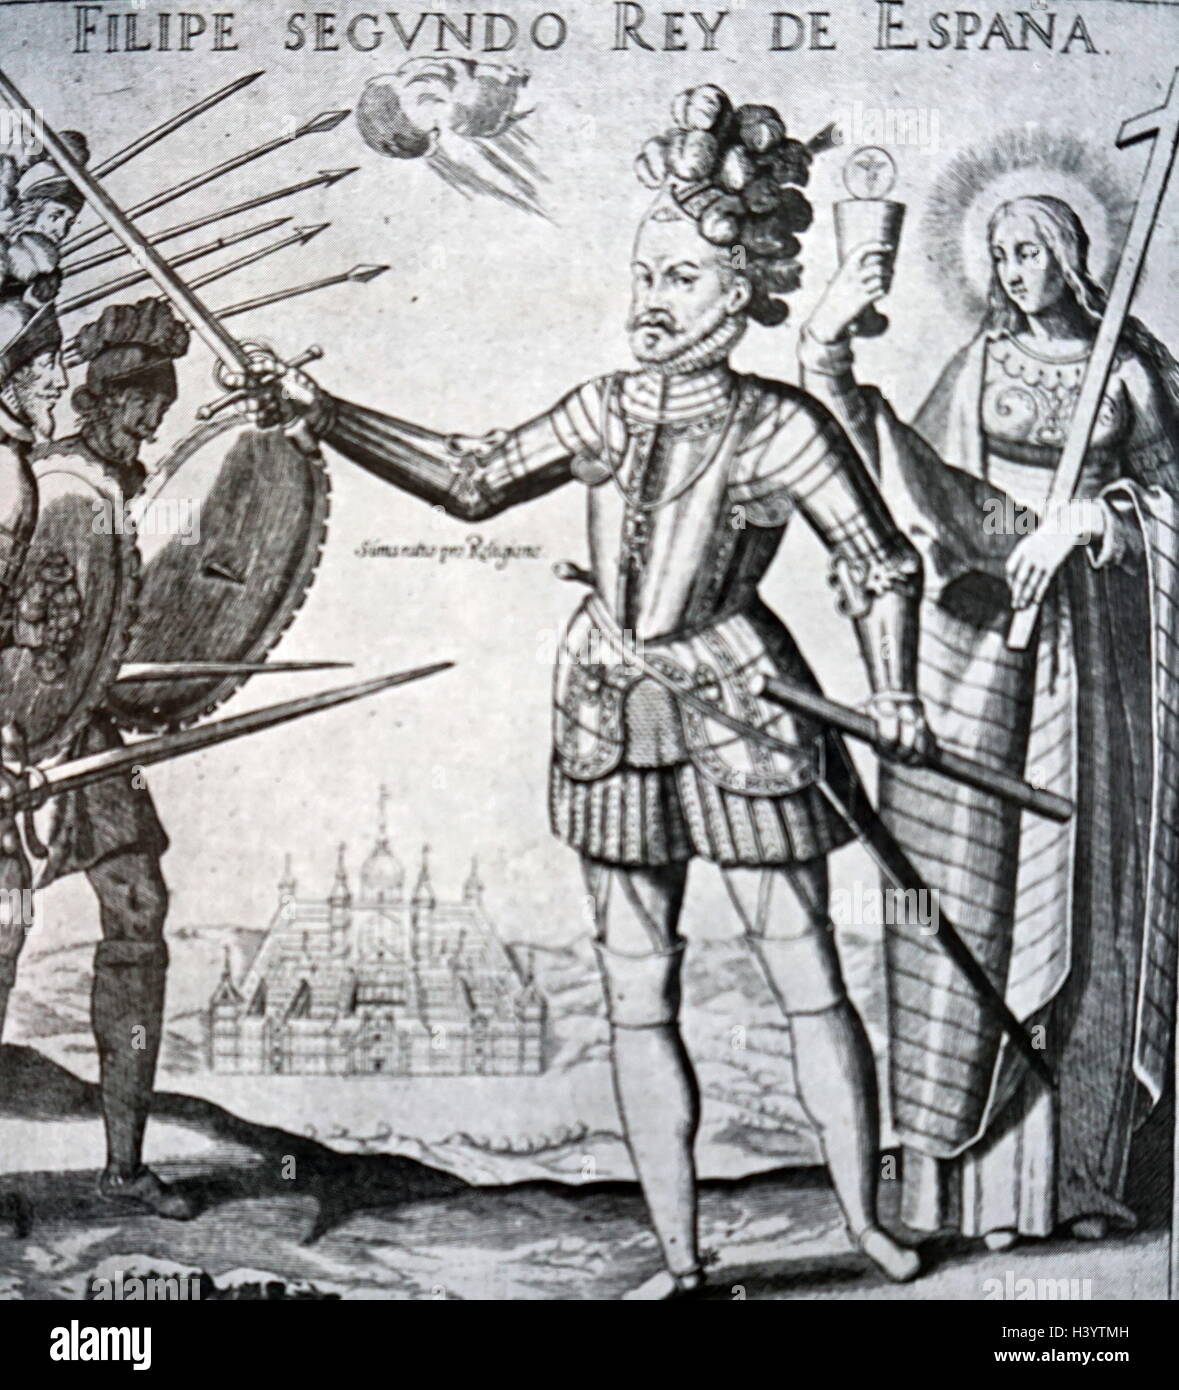 Illustration of Philip II of Spain (1527-1598) King of Spain, Portugal, Naples and Sicily. Dated 16th Century Stock Photo